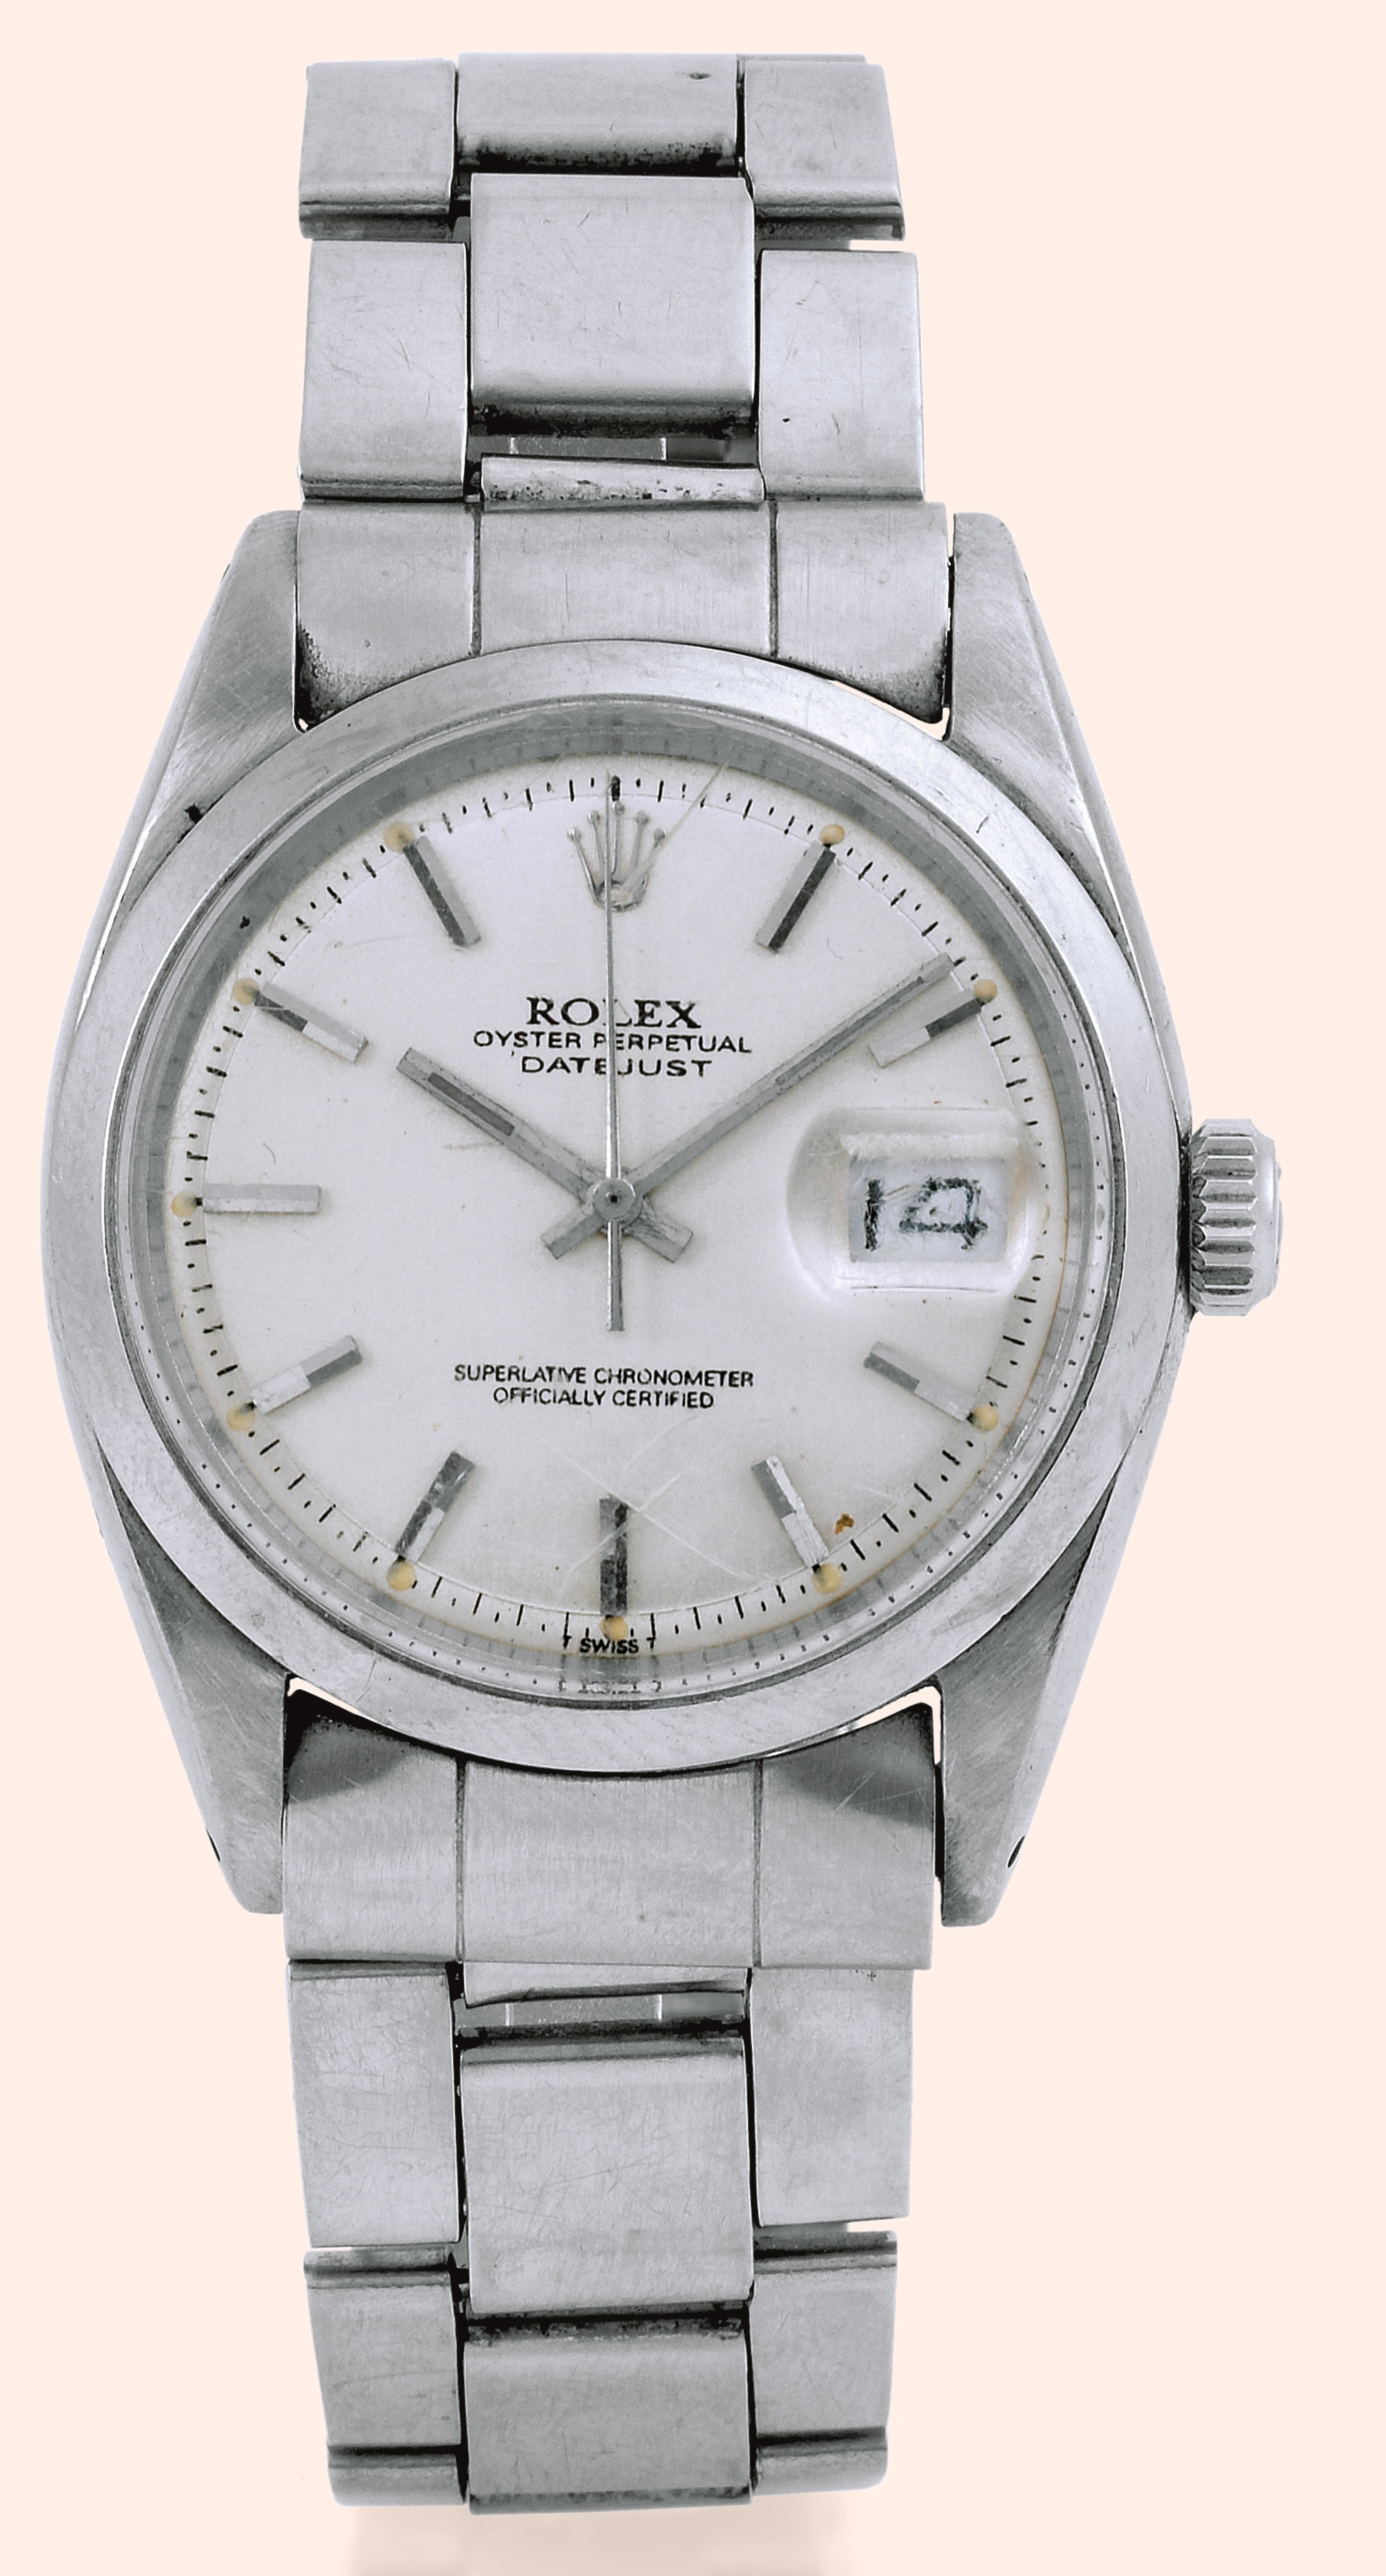 """Rolex, """"Oyster Perpetual Datejust, Superlative Chronometer Officially"""